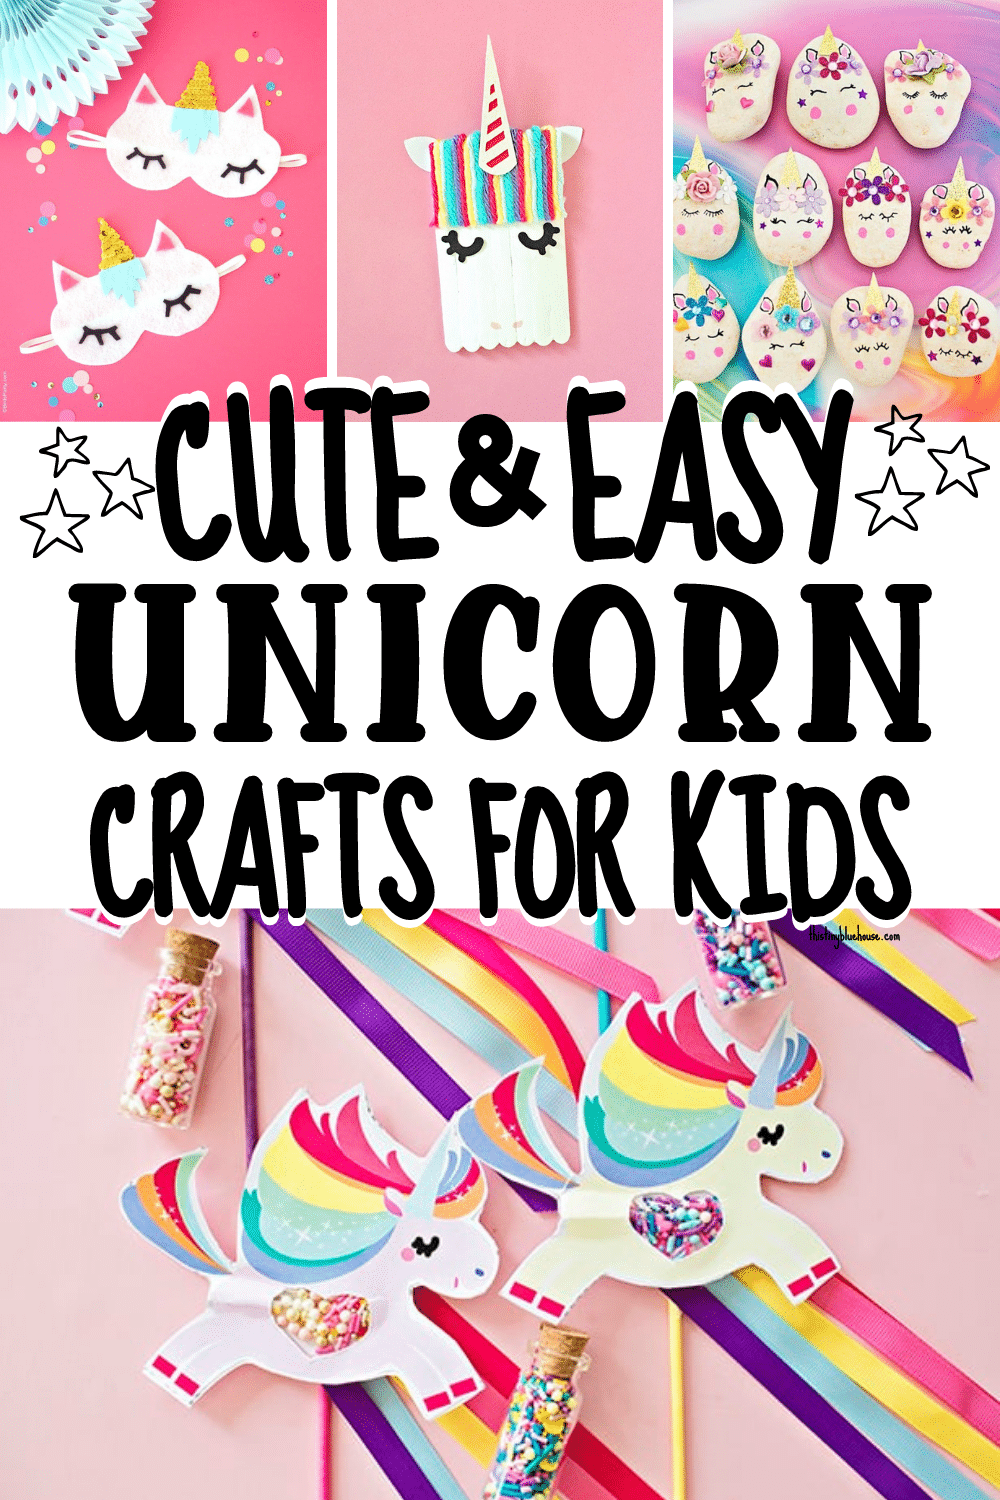 Cute & Easy Unicorn Crafts For Kids